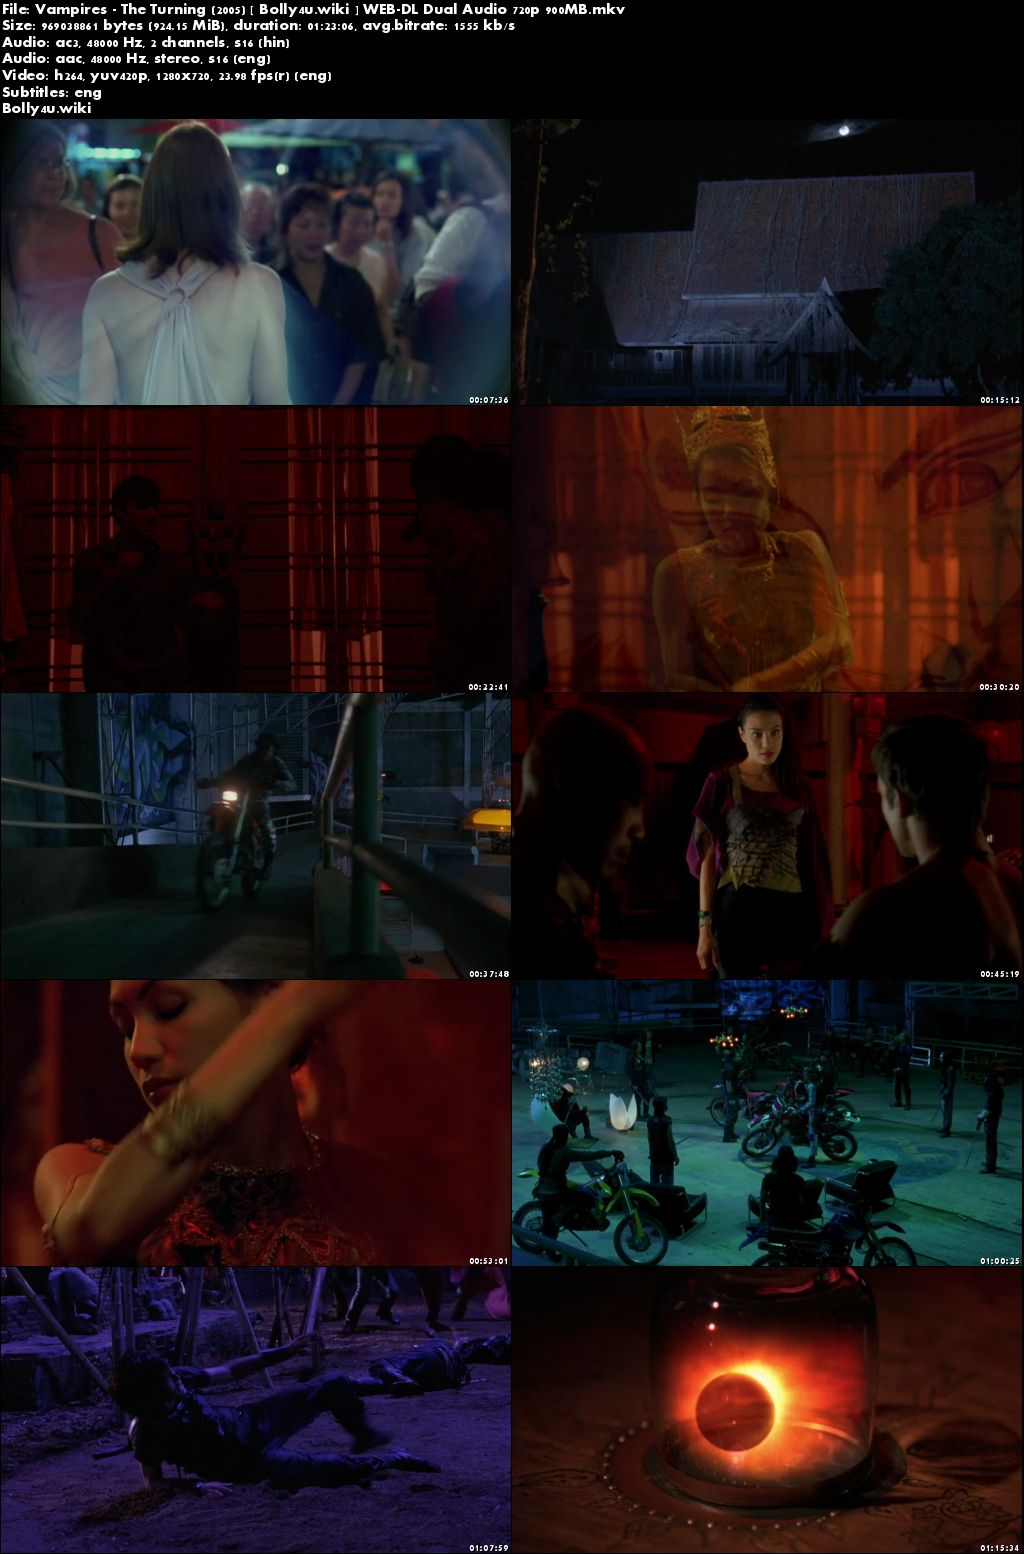 Vampires The Turning 2005 WEB-DL 300Mb Hindi Dual Audio 480p Download